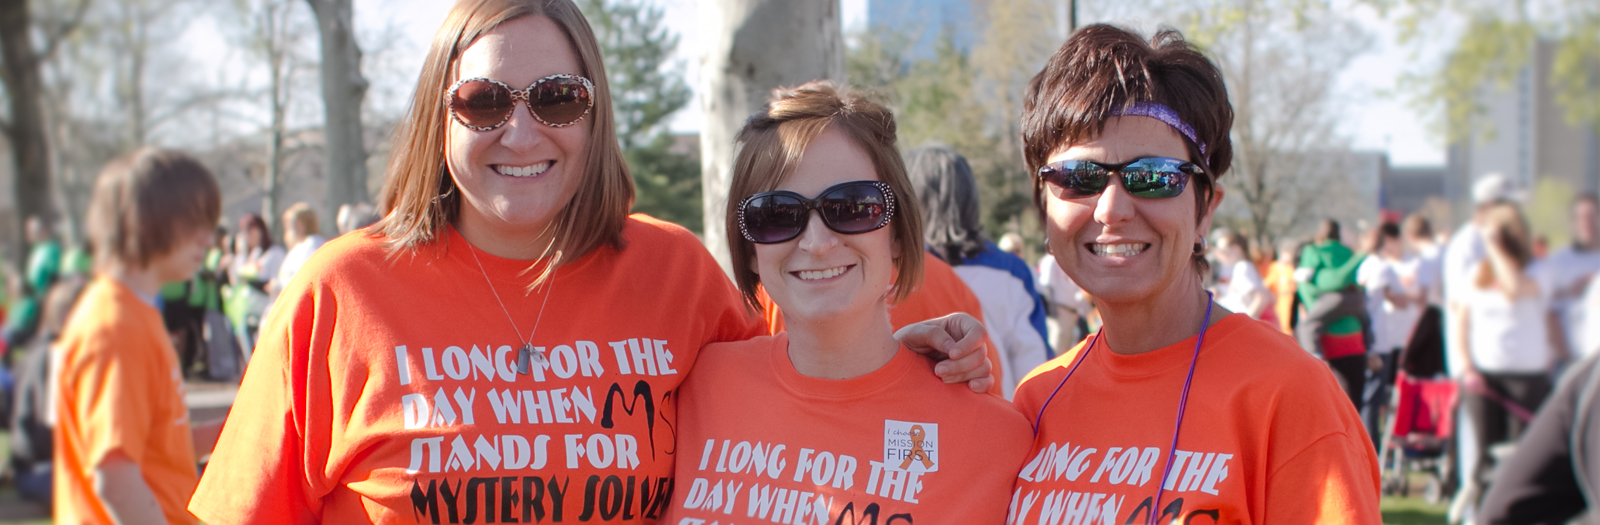 Walk MS 2015 Web Image